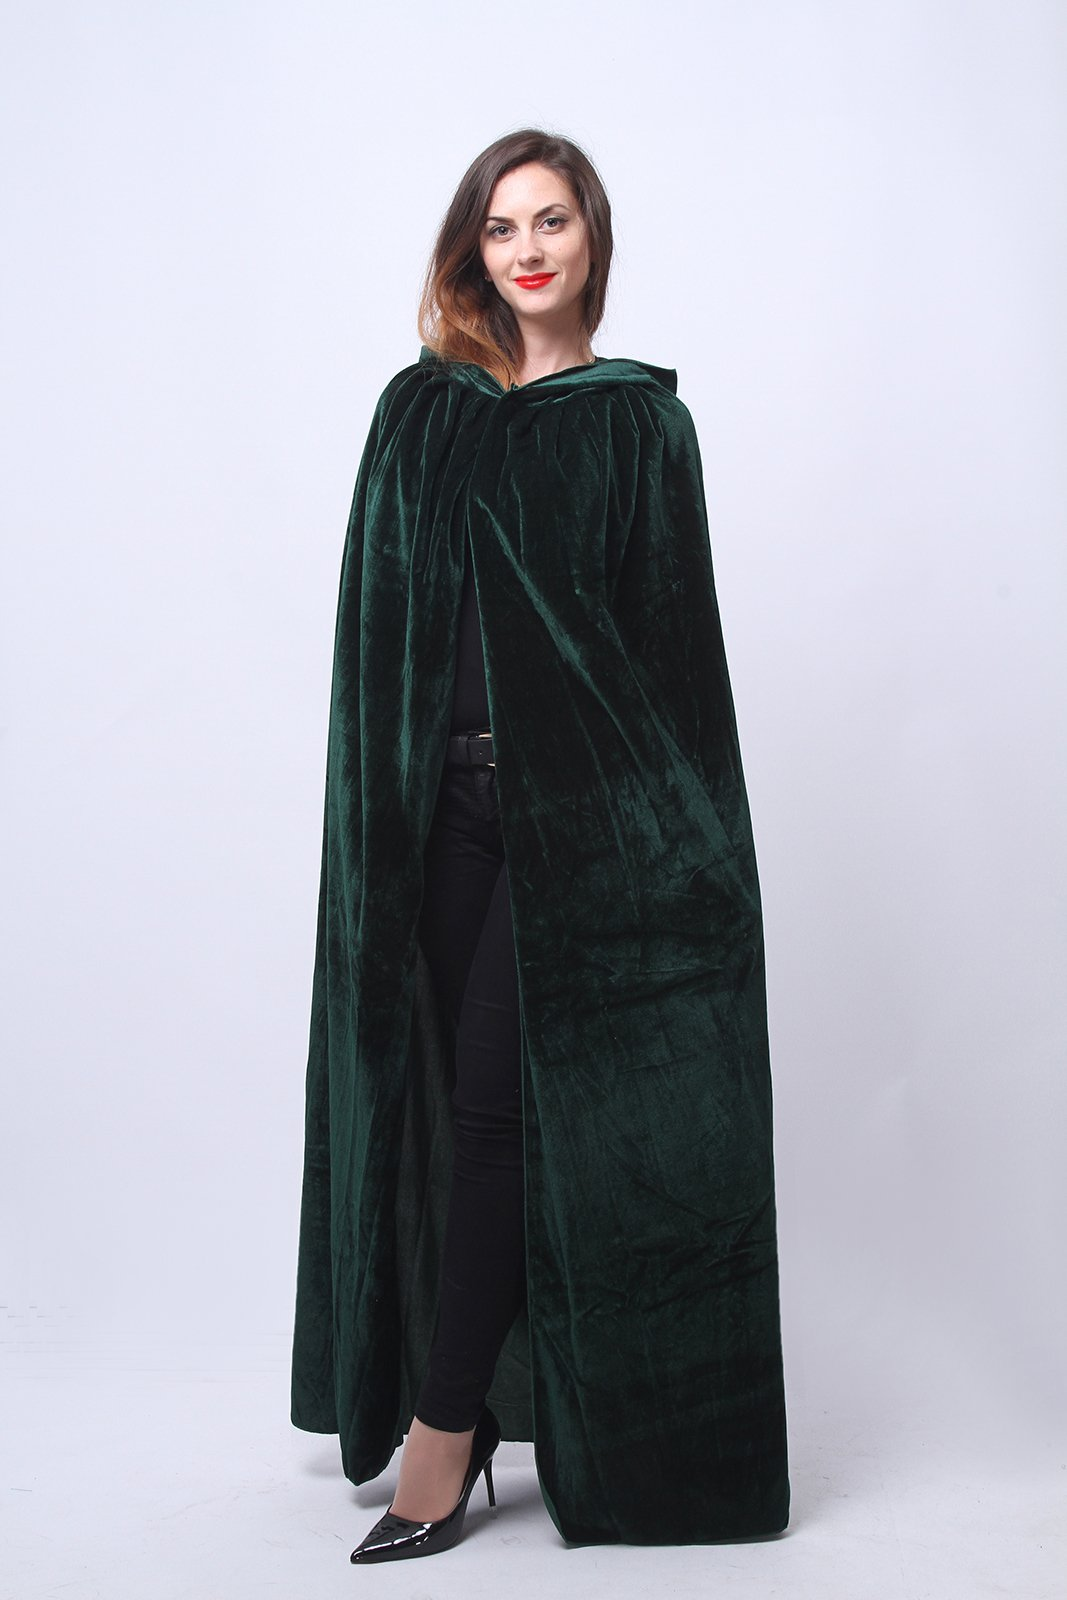 Nuoqi Mens Halloween Costumes Unisex Adults Cosplay Green Cape Cosplay Costumes by Nuoqi (Image #3)